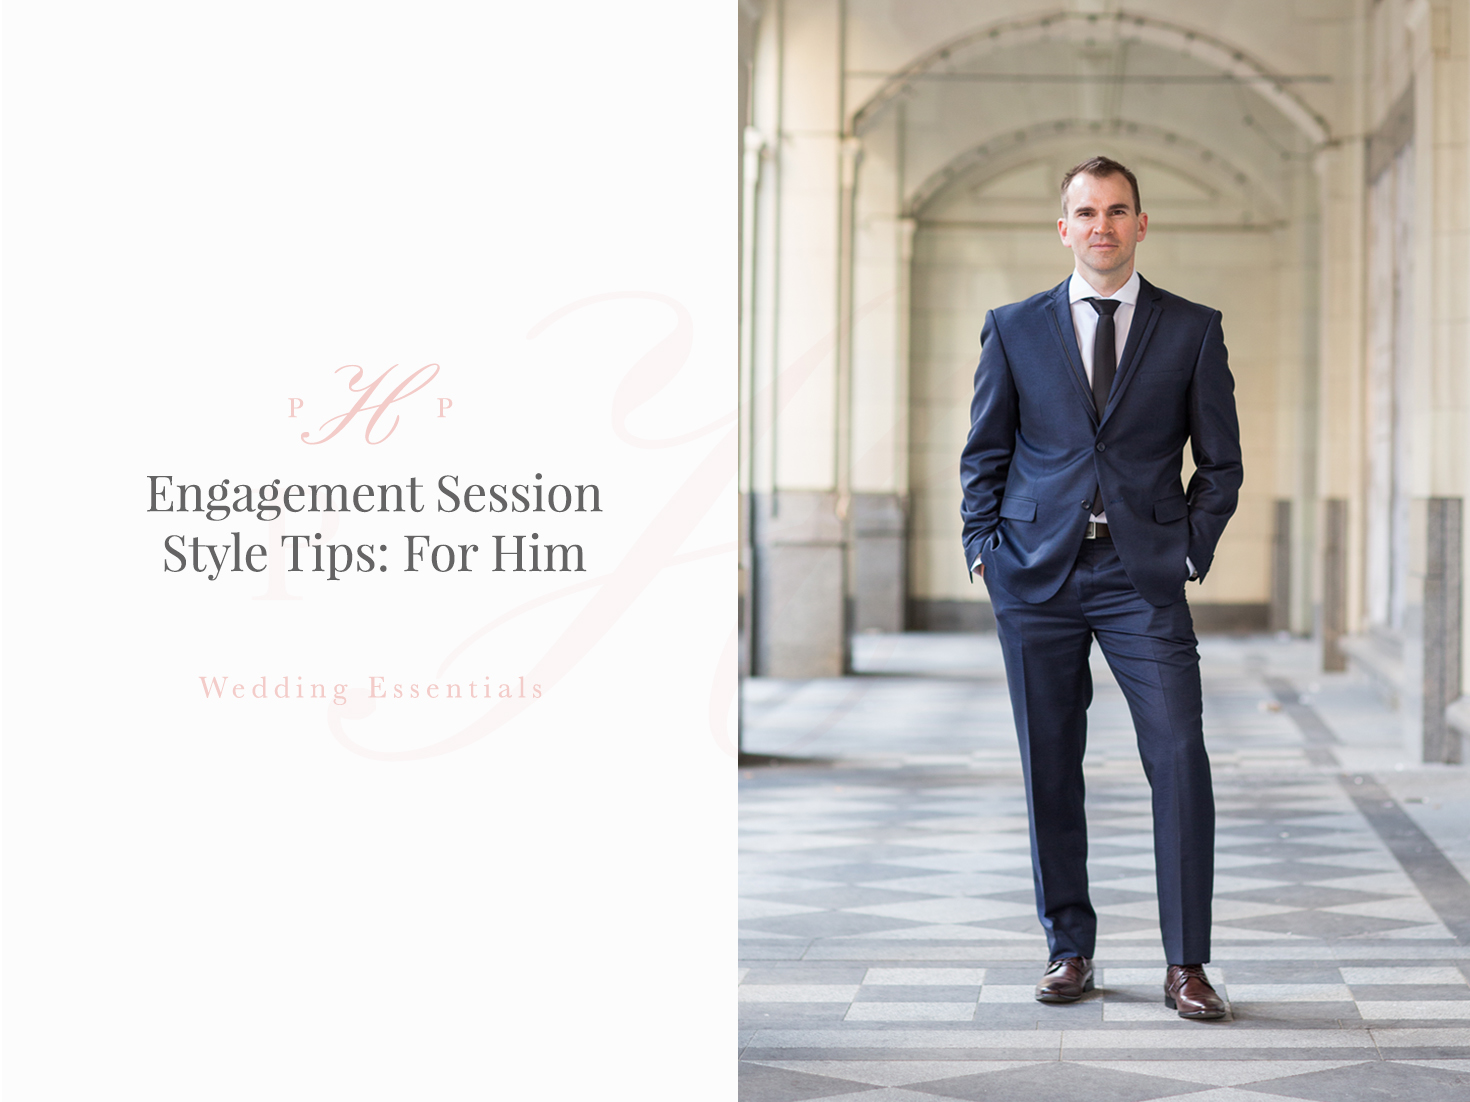 Engagement Session Style Tips For Him